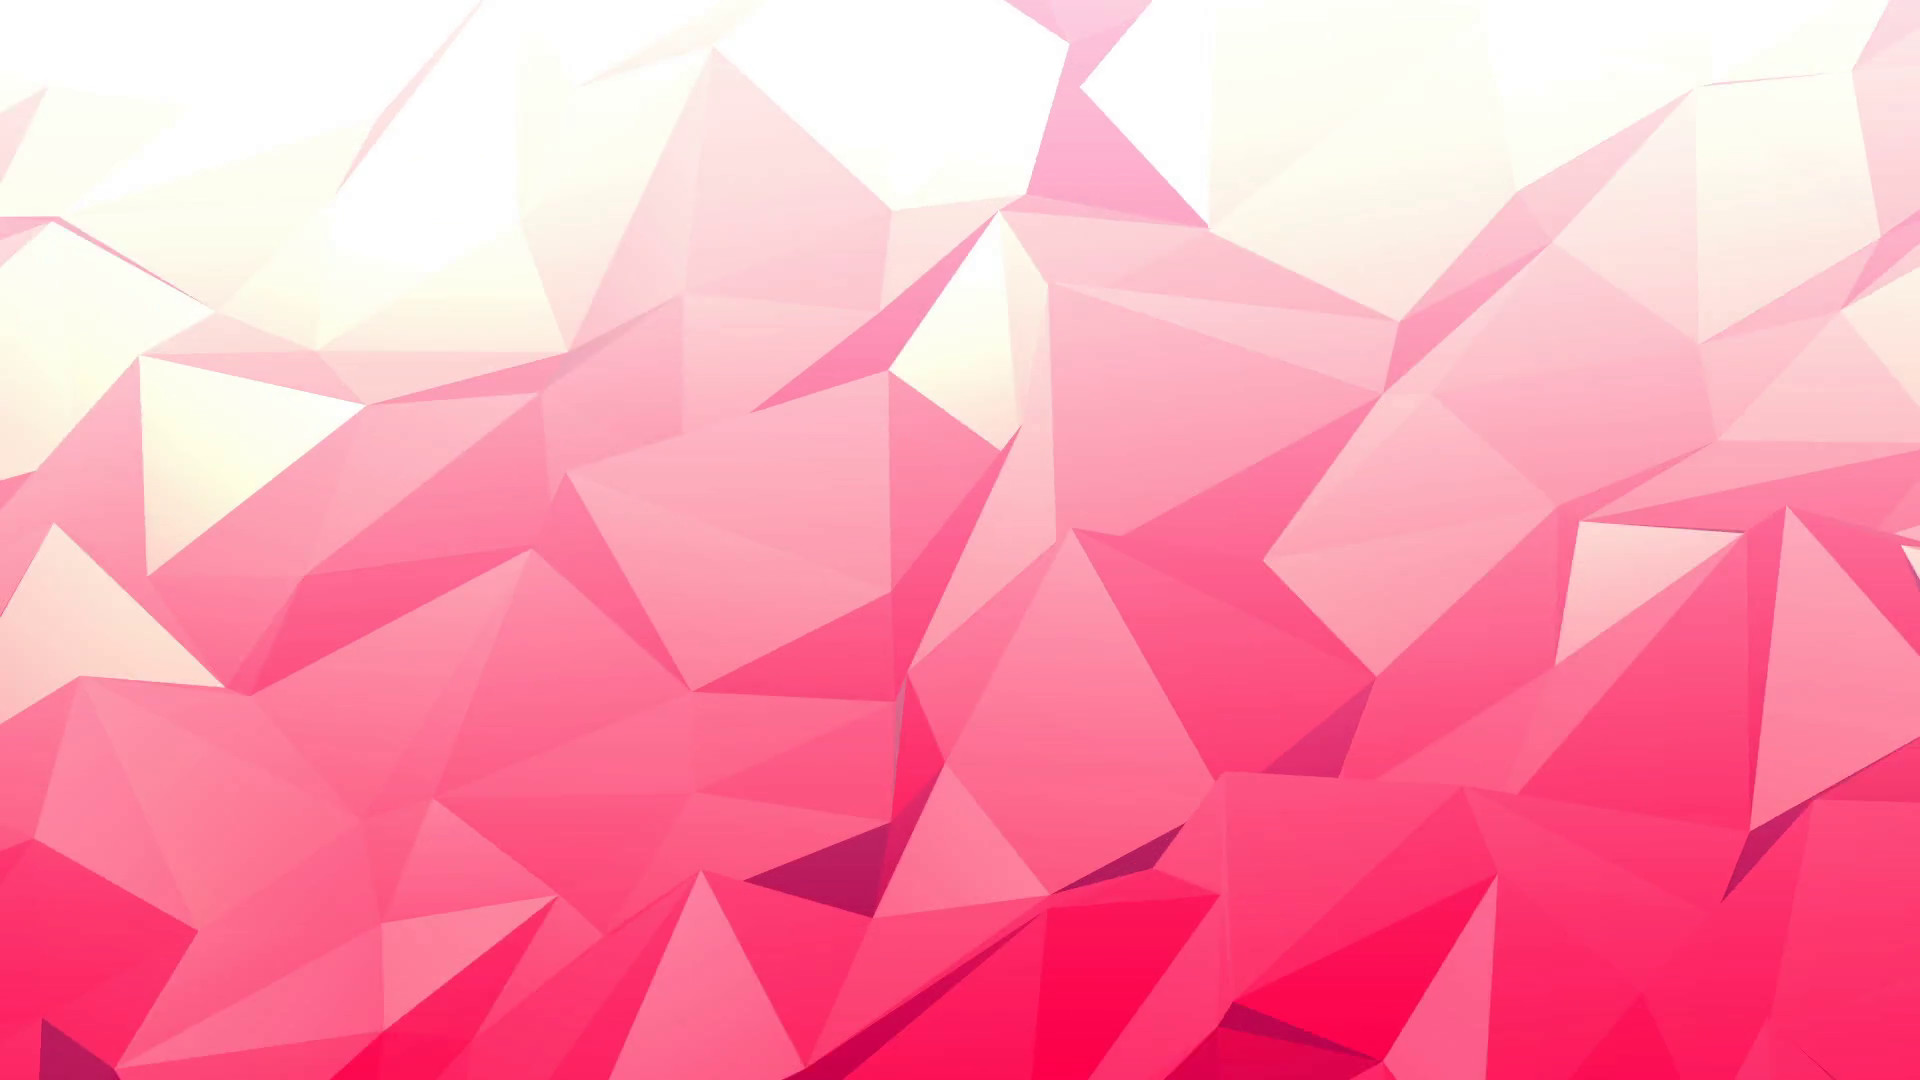 Baby Pink Iphone Wallpaper Pink Background Image 183 ①